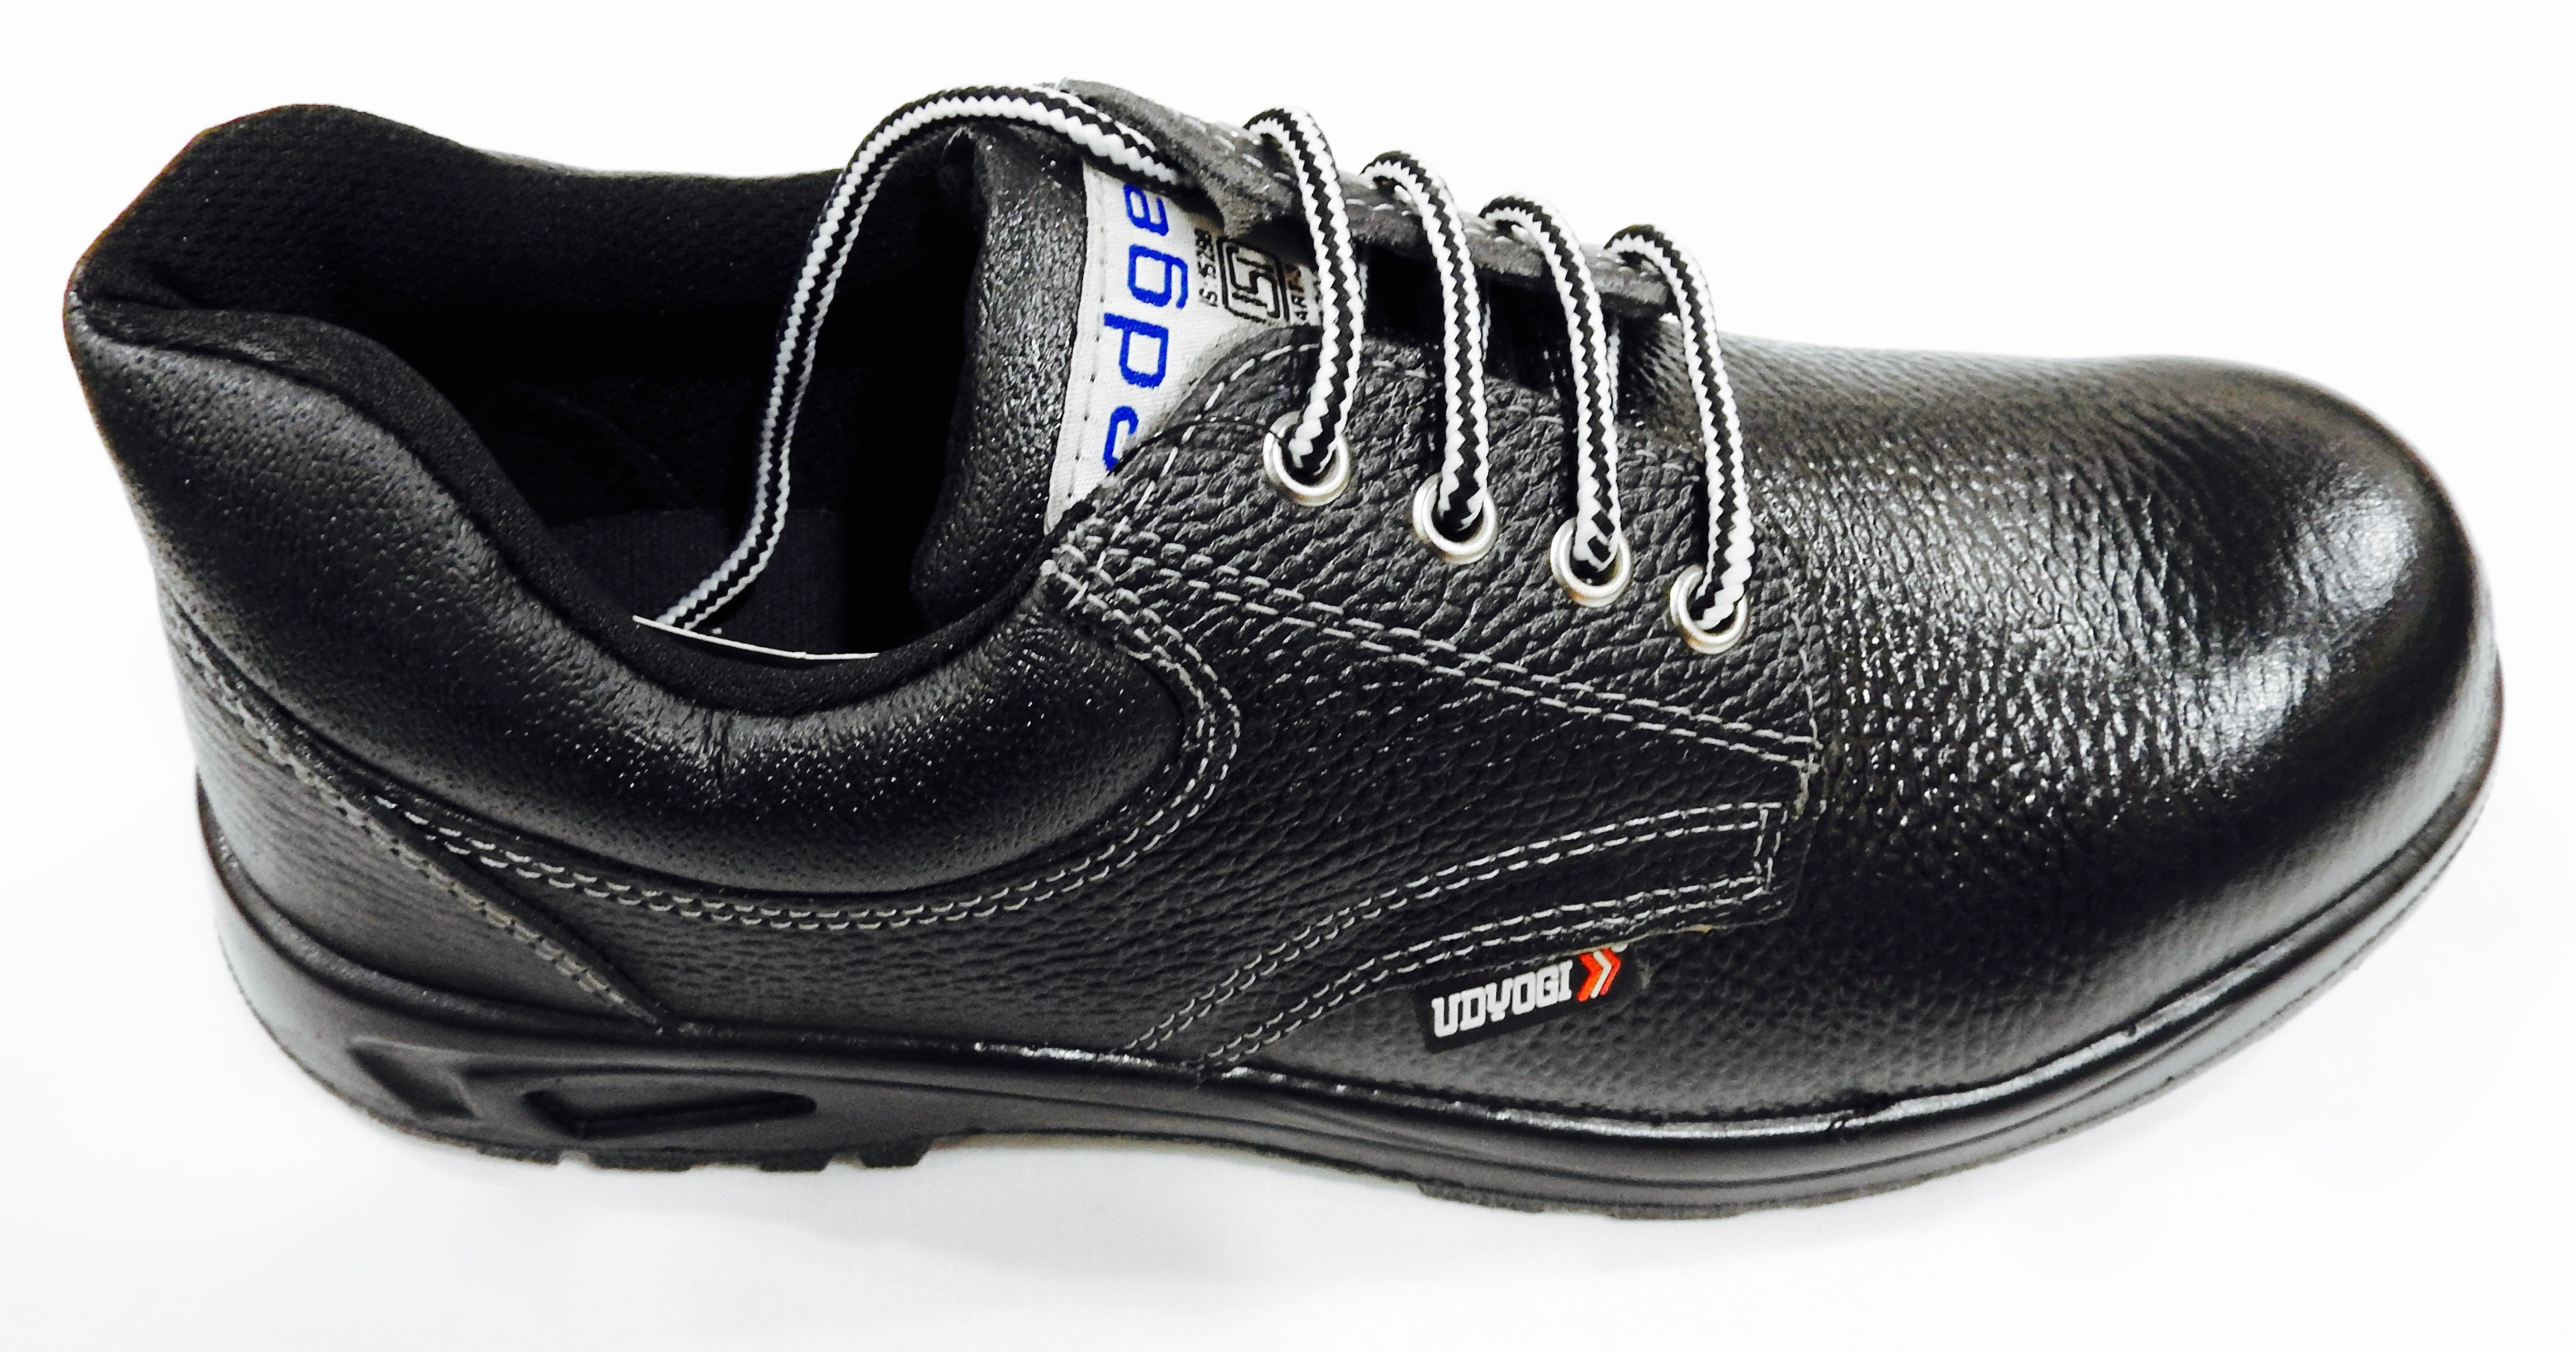 Best Udyogi Brands Casual-shoes Pricing In May 11 2018